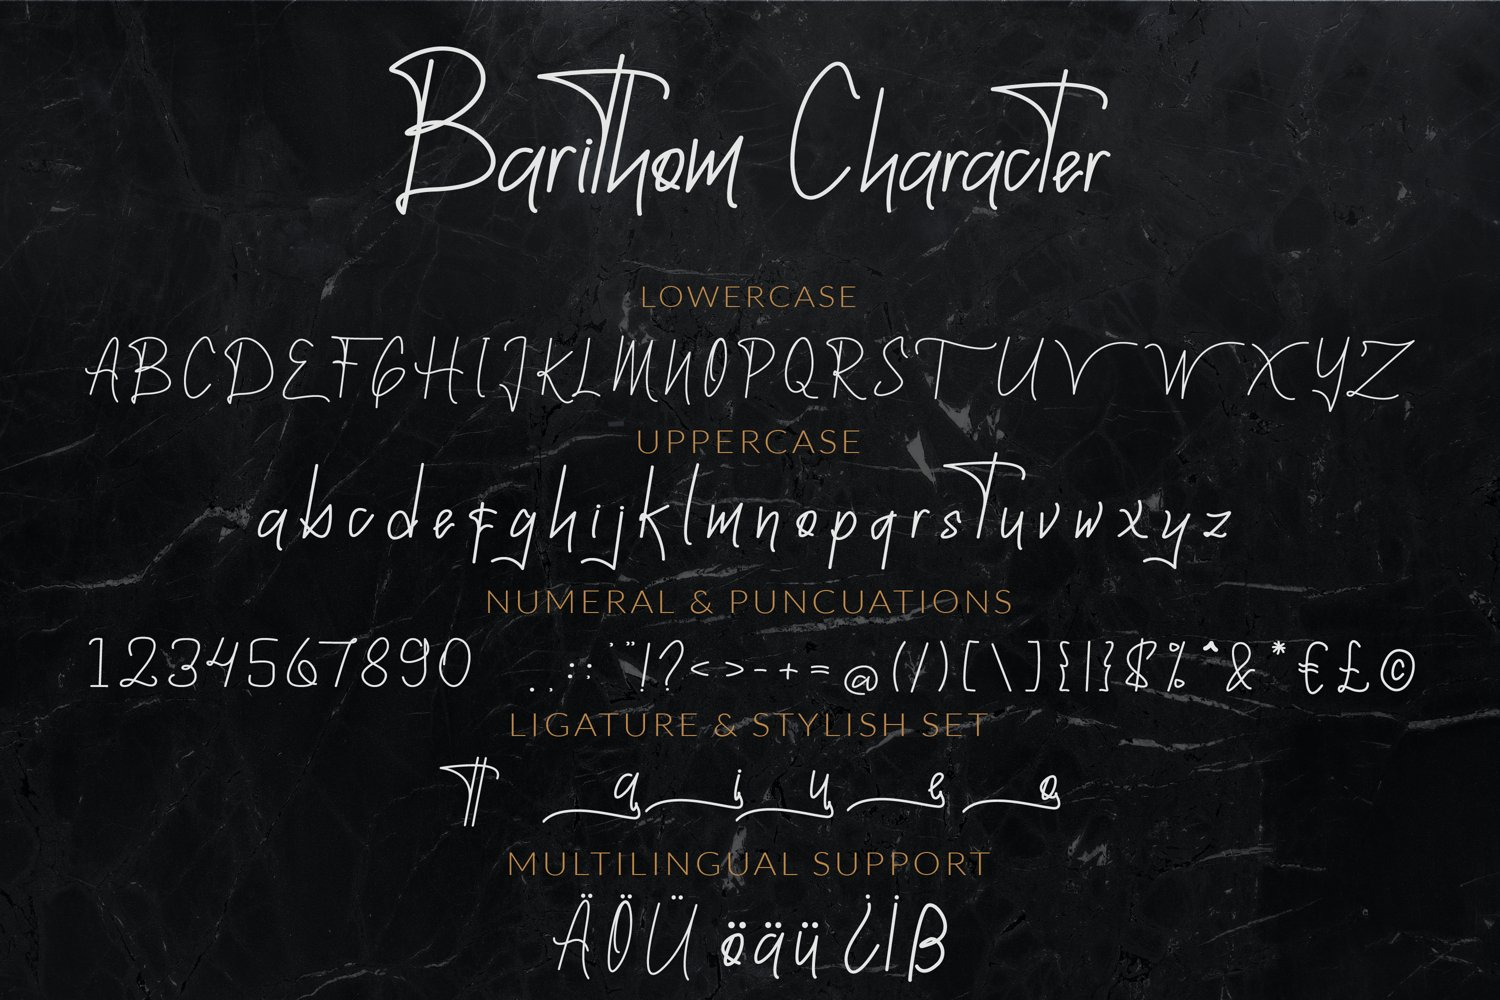 A general view of font in different variants. Barithom A Signature Monoline.